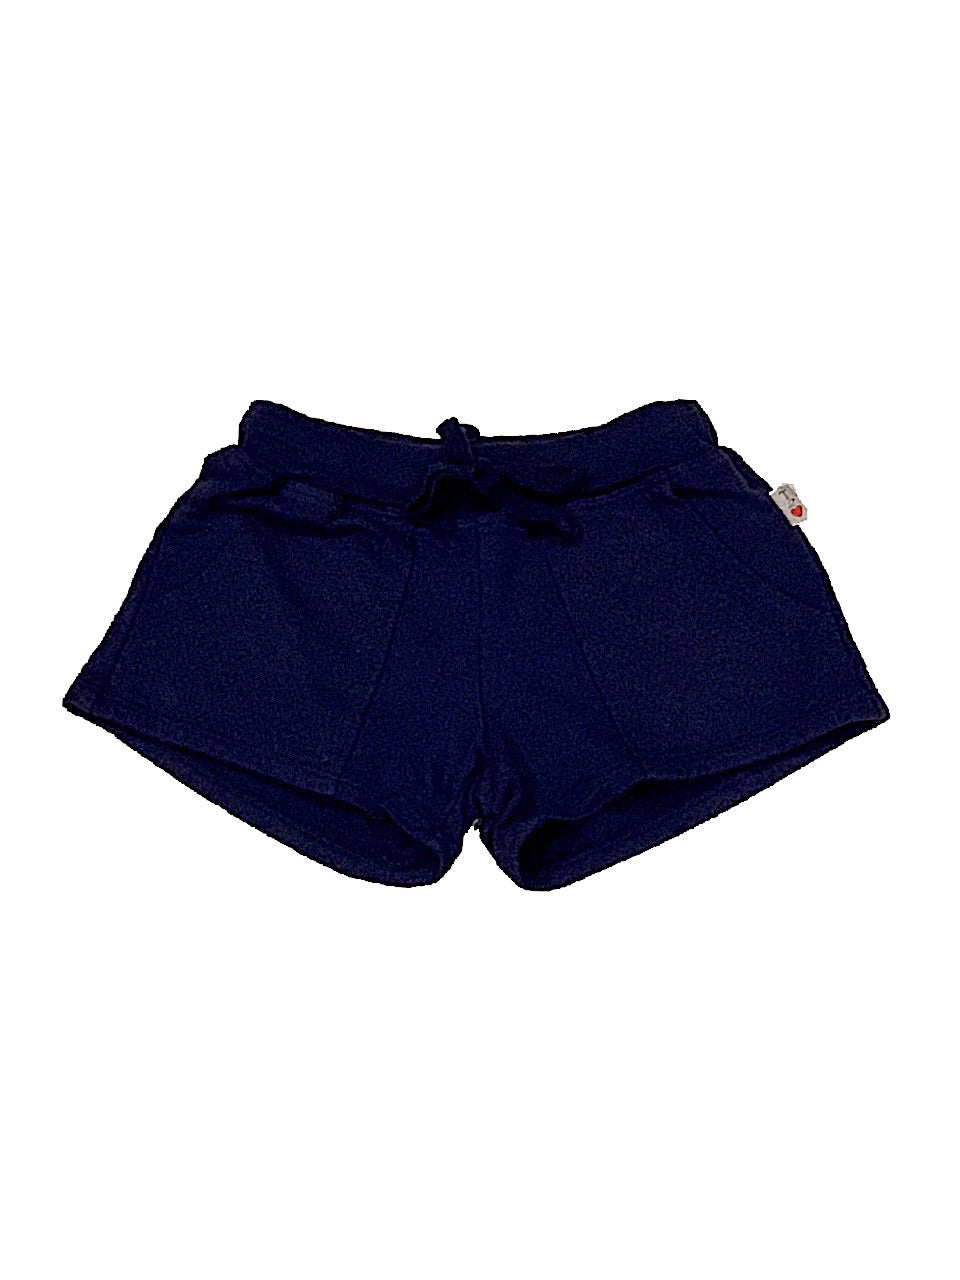 T2Love Navy Mesh Contrast Pocket Shorts